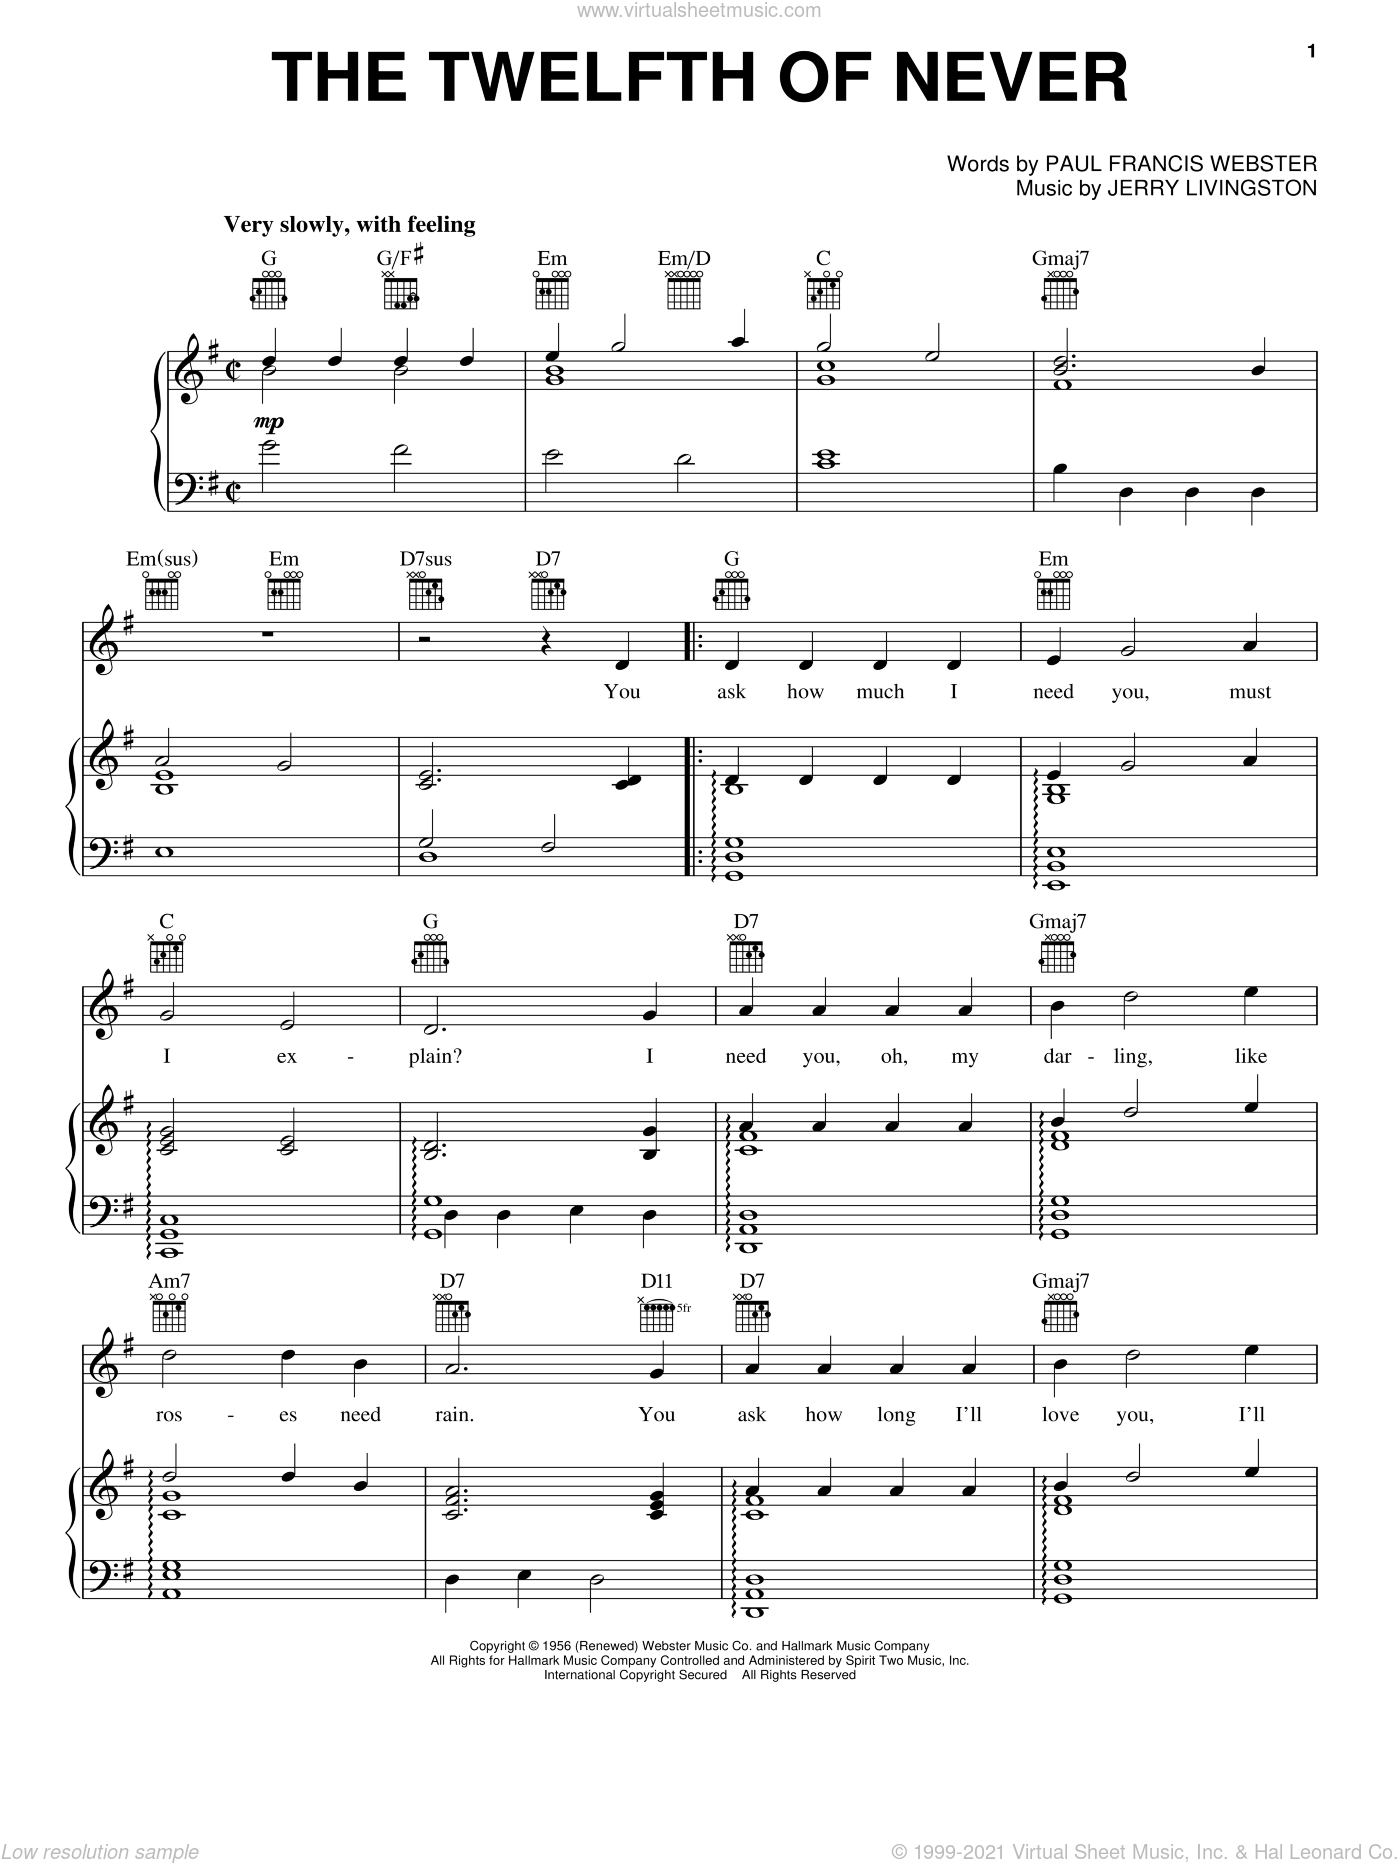 The Twelfth Of Never sheet music for voice, piano or guitar by Paul Francis Webster, Donny Osmond, Jerry Livingston and Johnny Mathis. Score Image Preview.